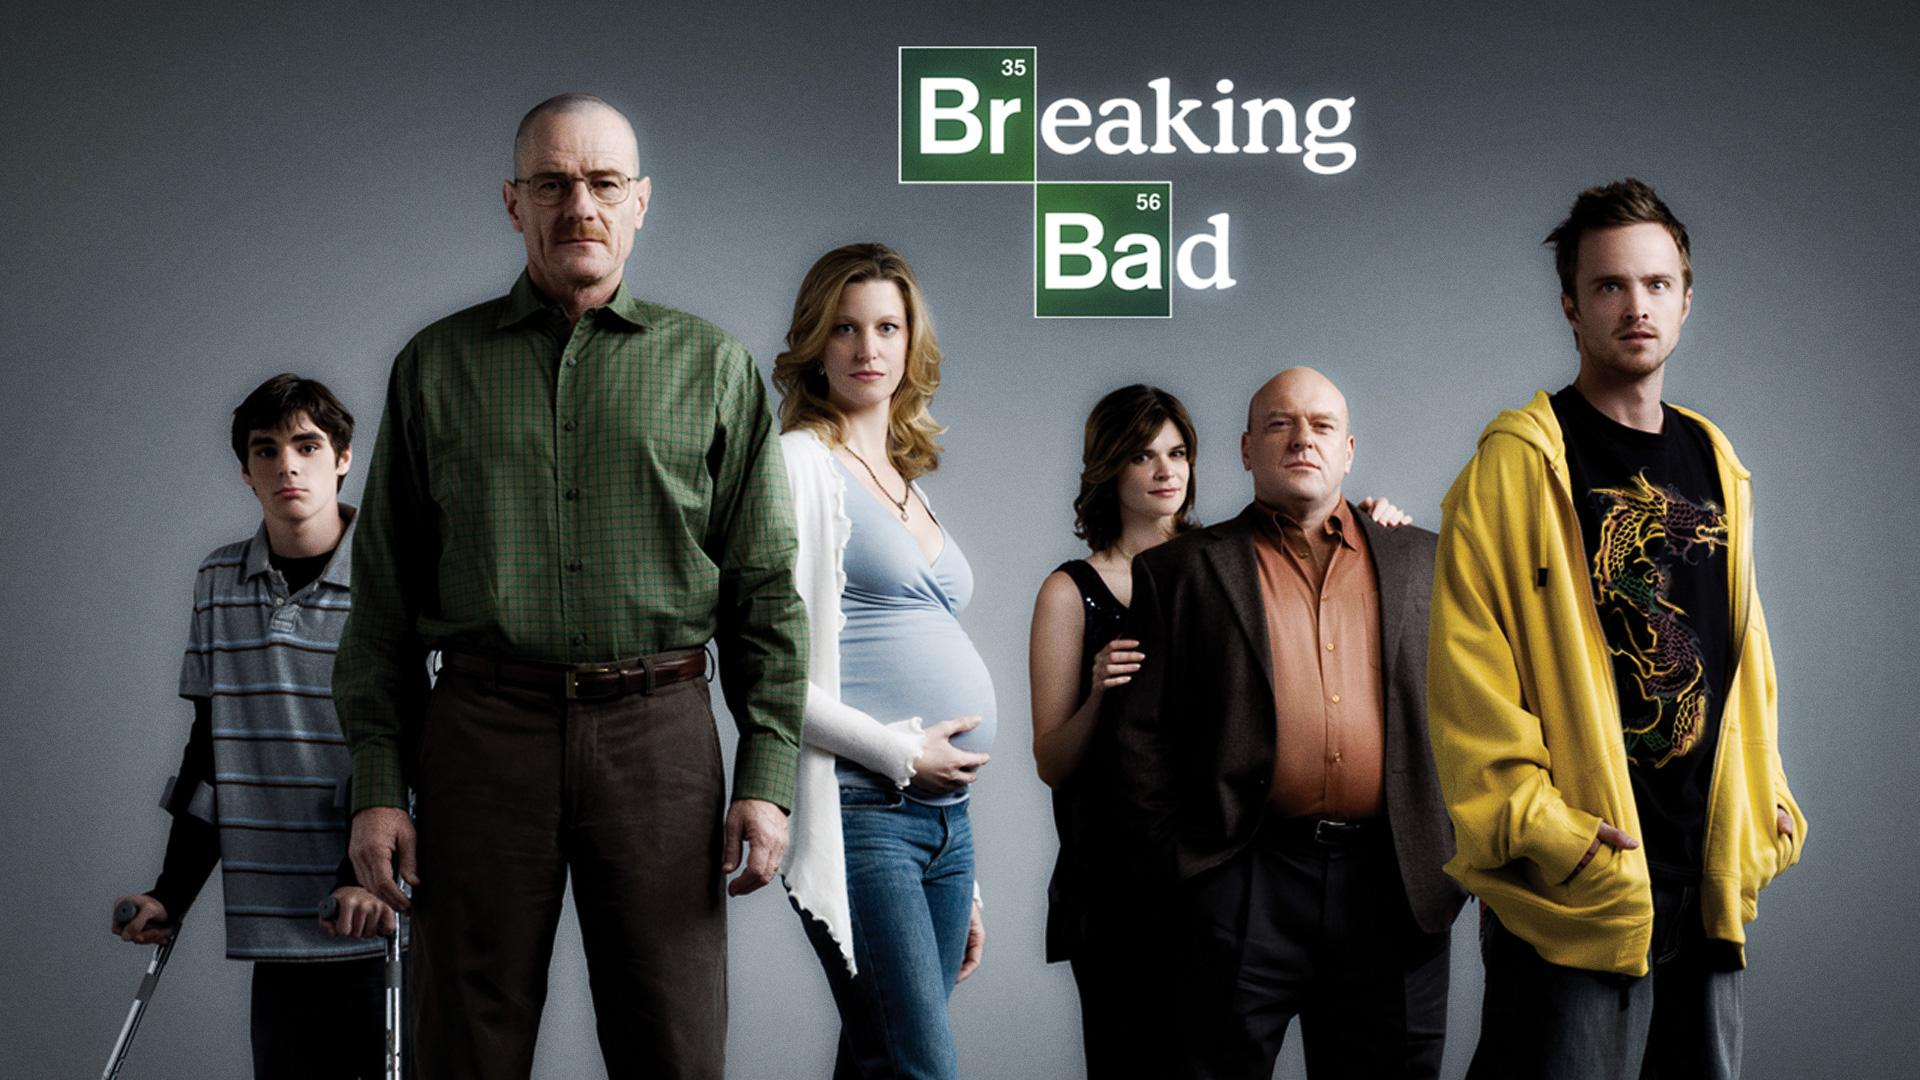 Breaking Bad: Main Cast HD Wallpaper | Download HD Wallpapers